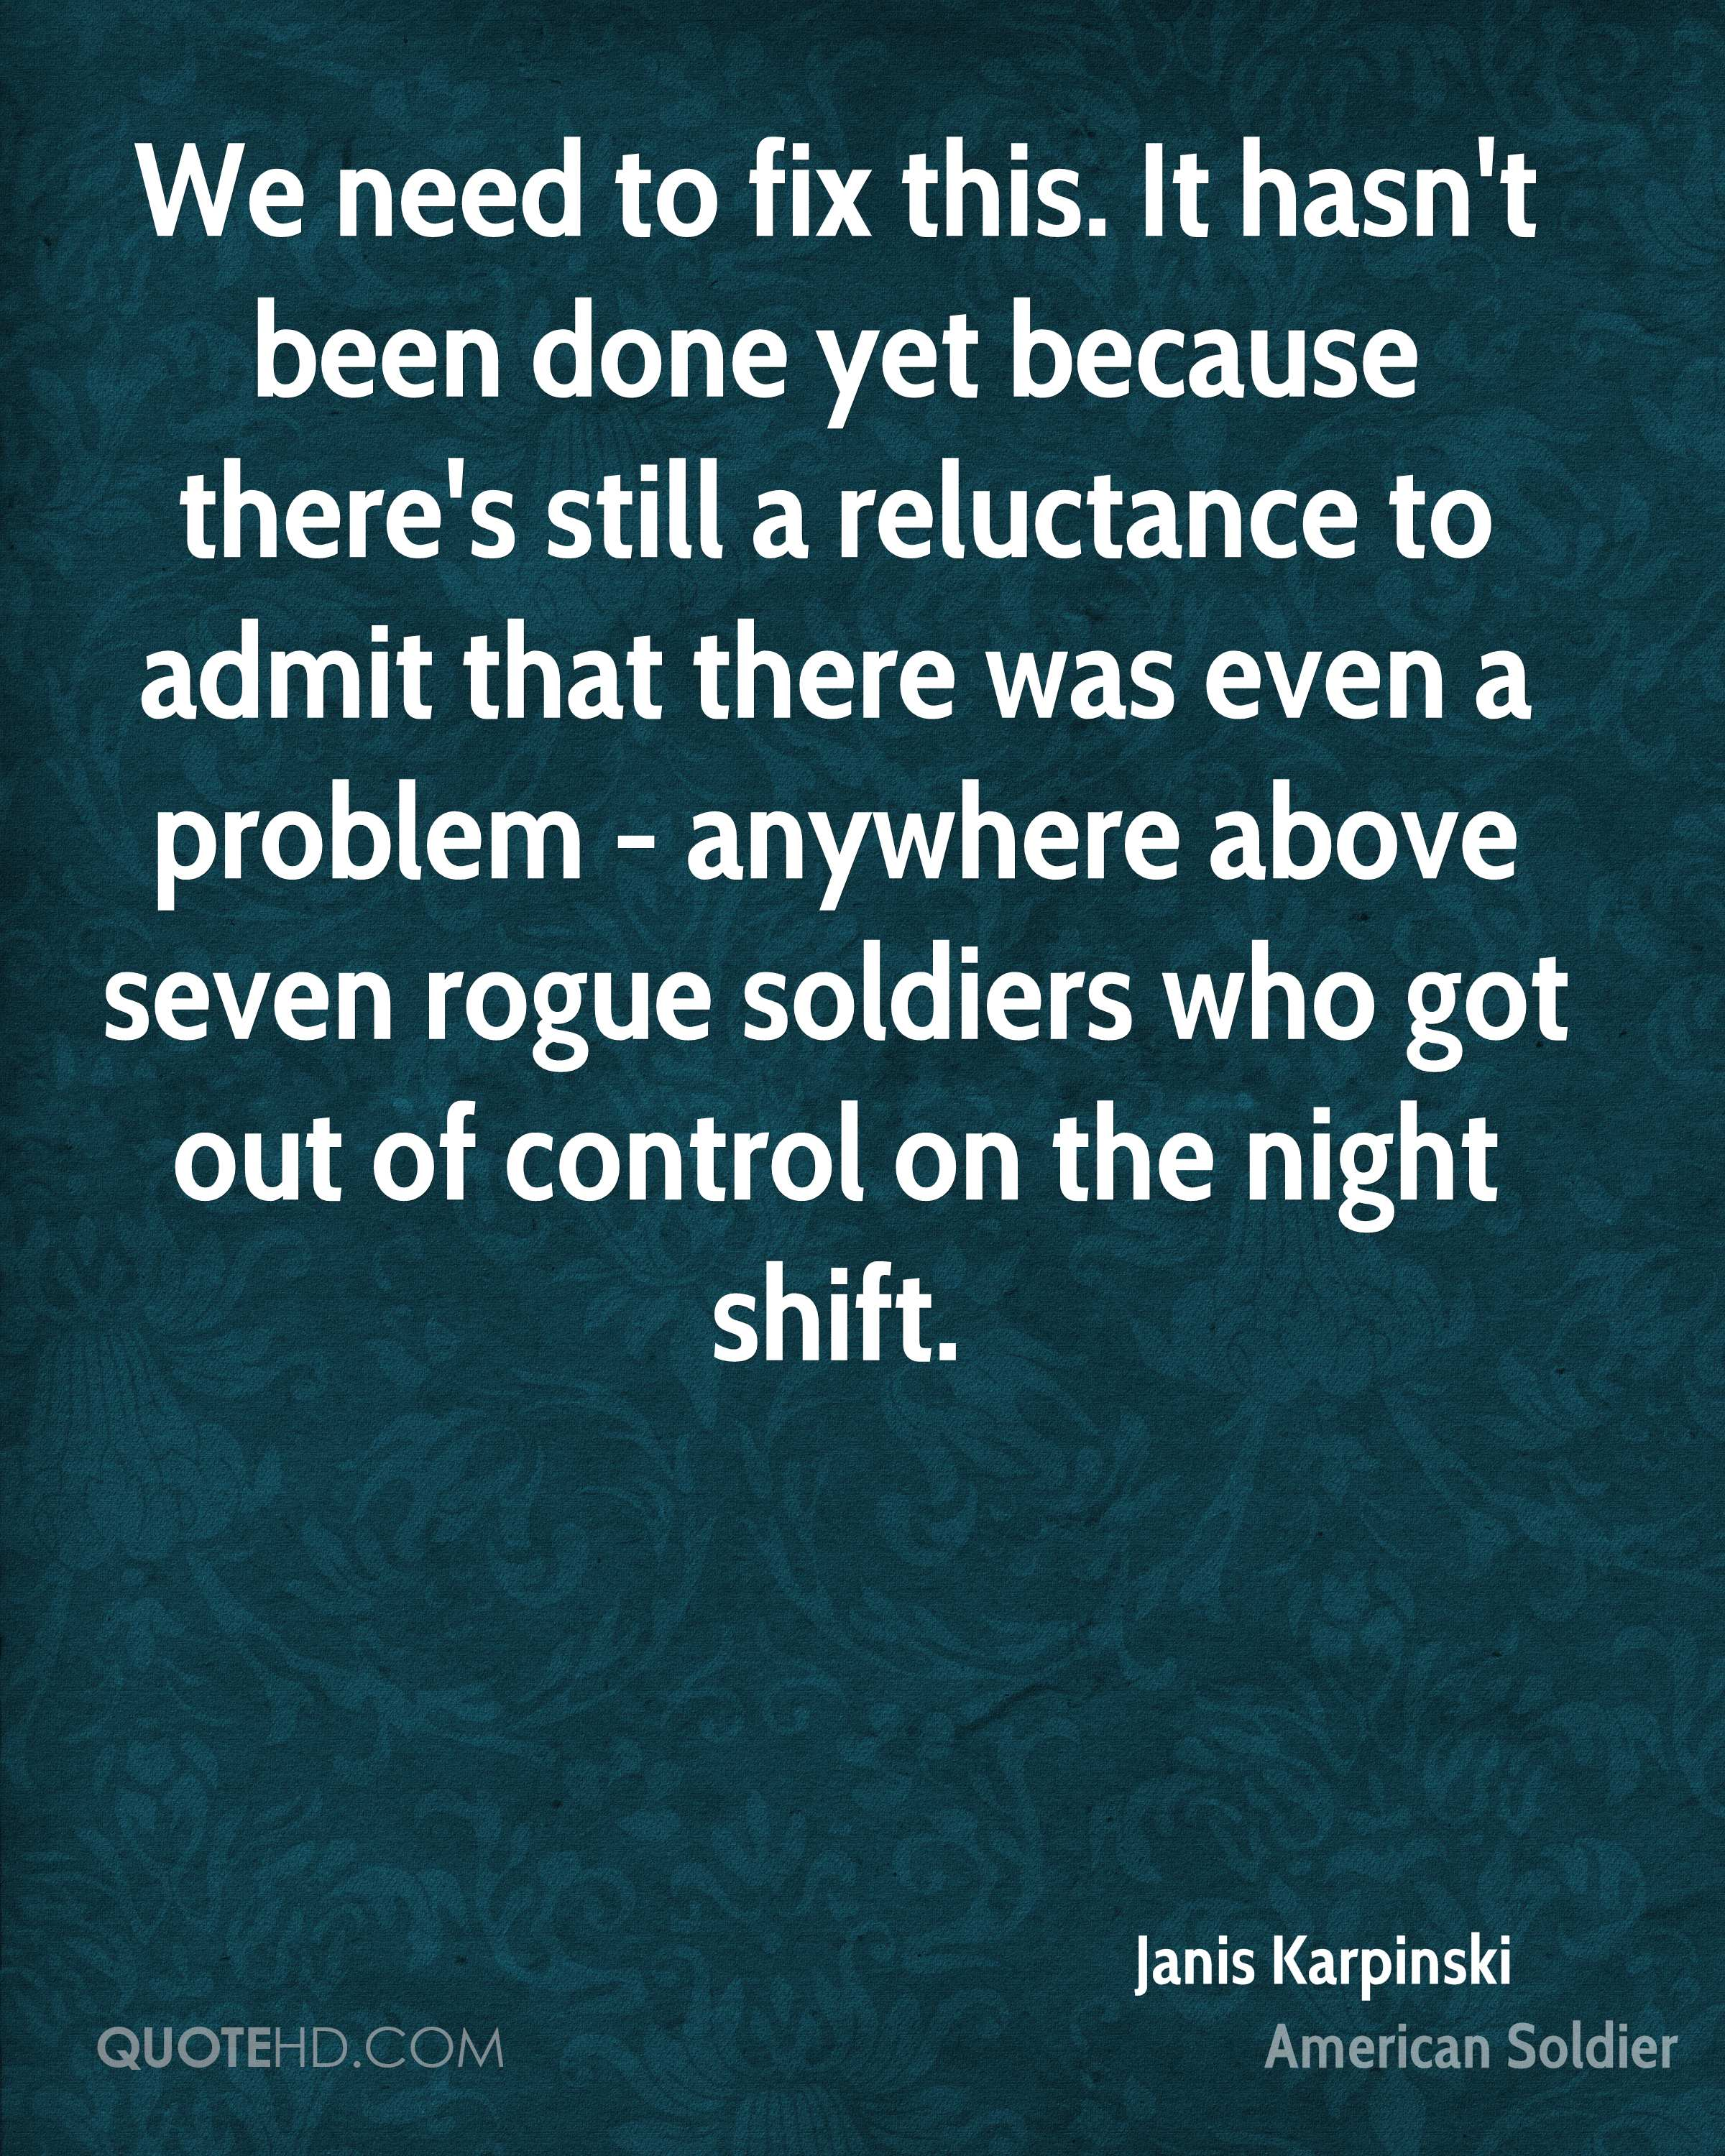 We need to fix this. It hasn't been done yet because there's still a reluctance to admit that there was even a problem - anywhere above seven rogue soldiers who got out of control on the night shift.